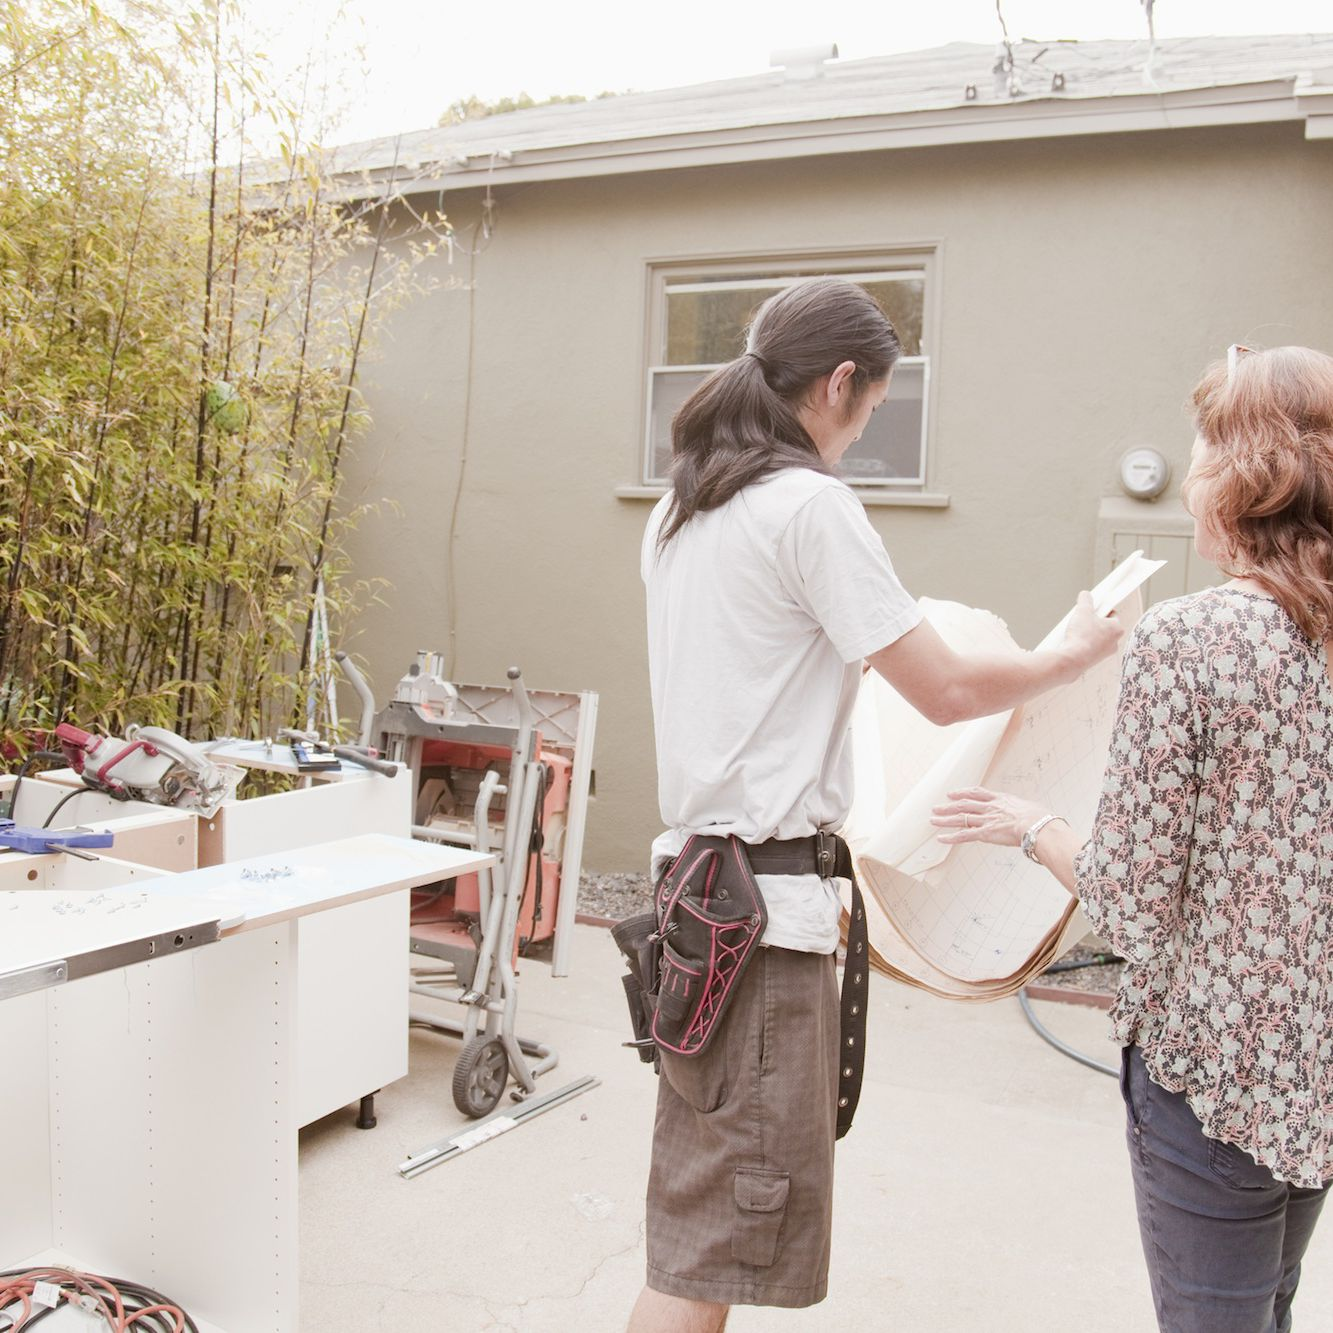 You Should Ask Friends And Family For References On Local Contractors That They Have Used